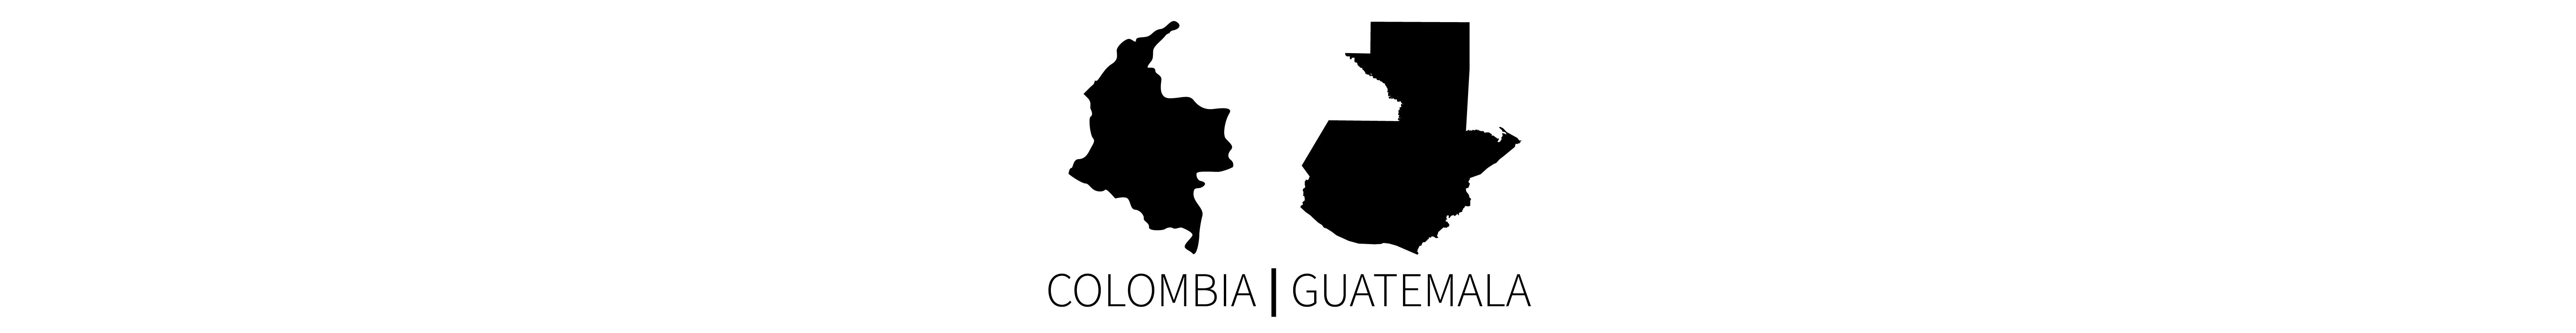 This image contains the two black map silhouettes of the countries of Colombia (left) and Guatemala (right), with identifying all-caps text below each country.